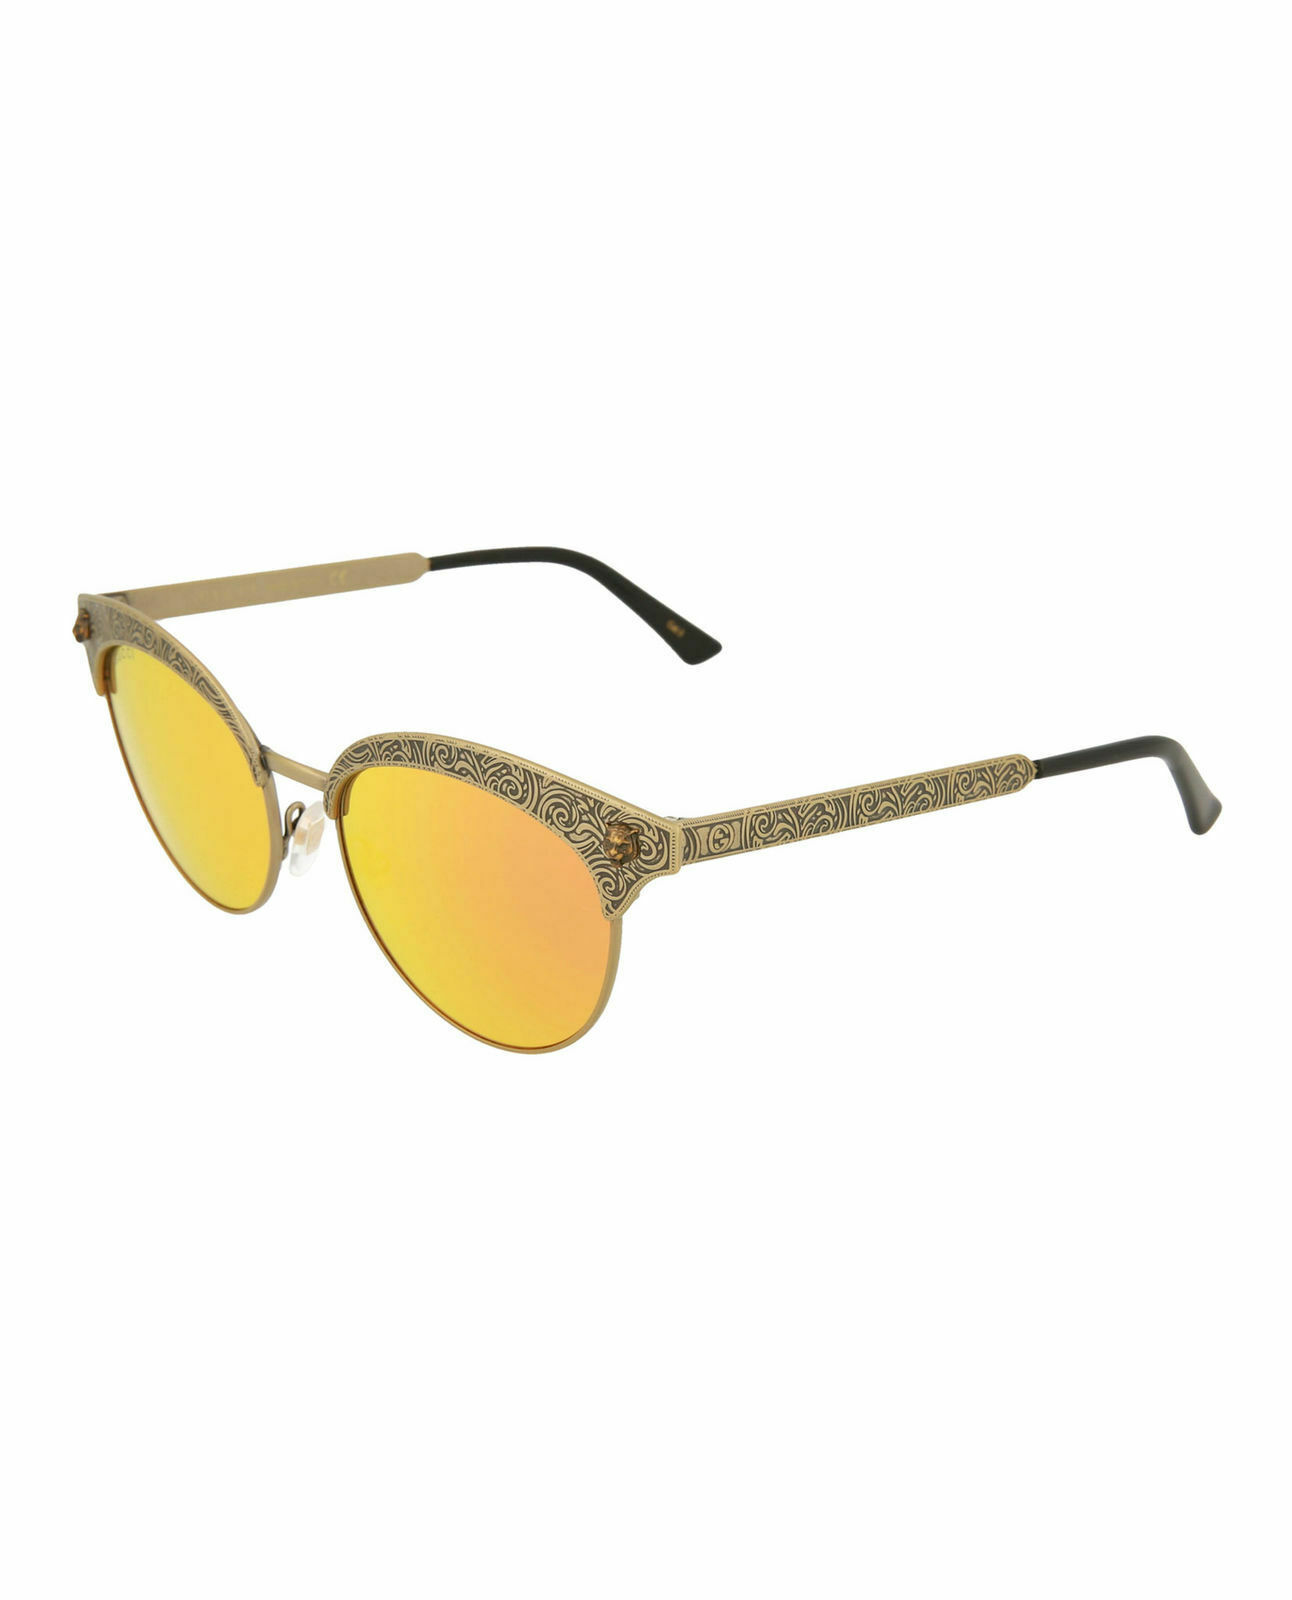 5a3ab8b83a560 Gucci Women s Round   Oval Sunglasses and 50 similar items. 57